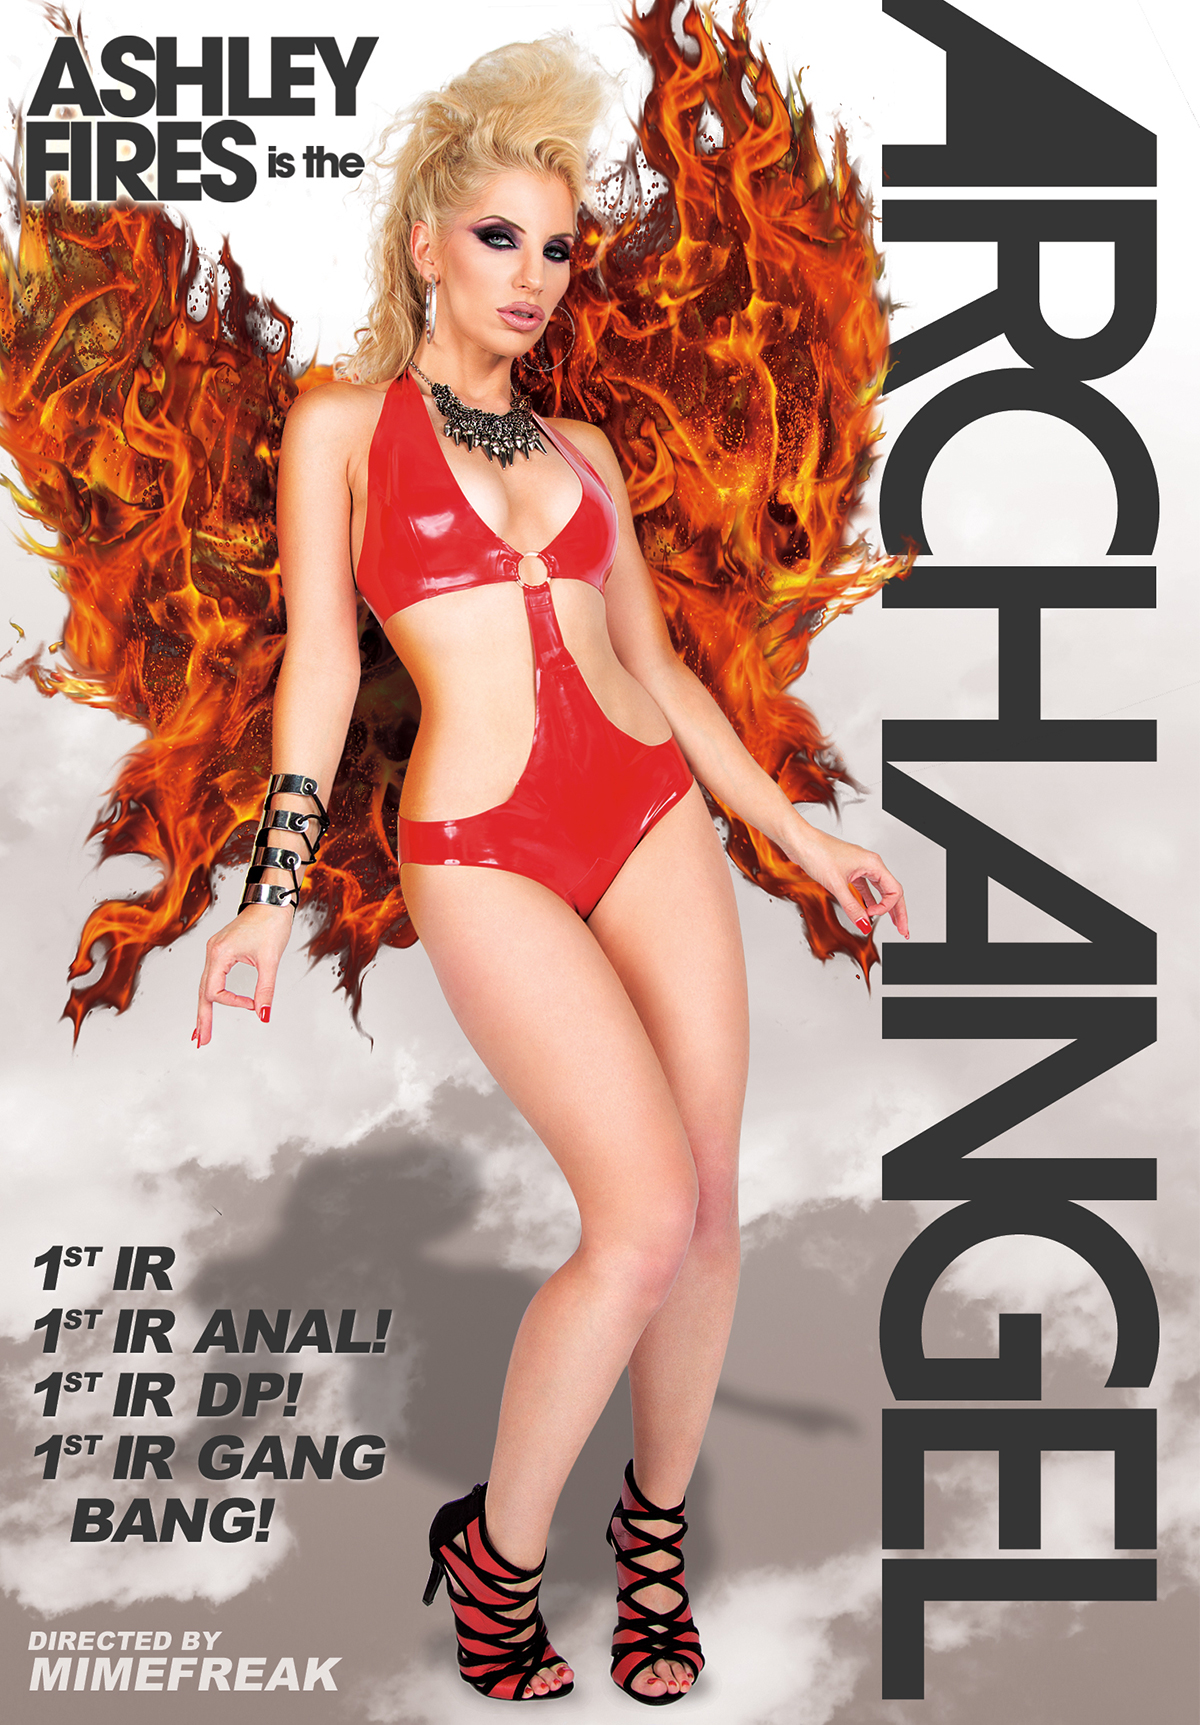 Ashley Fires is the Archangel